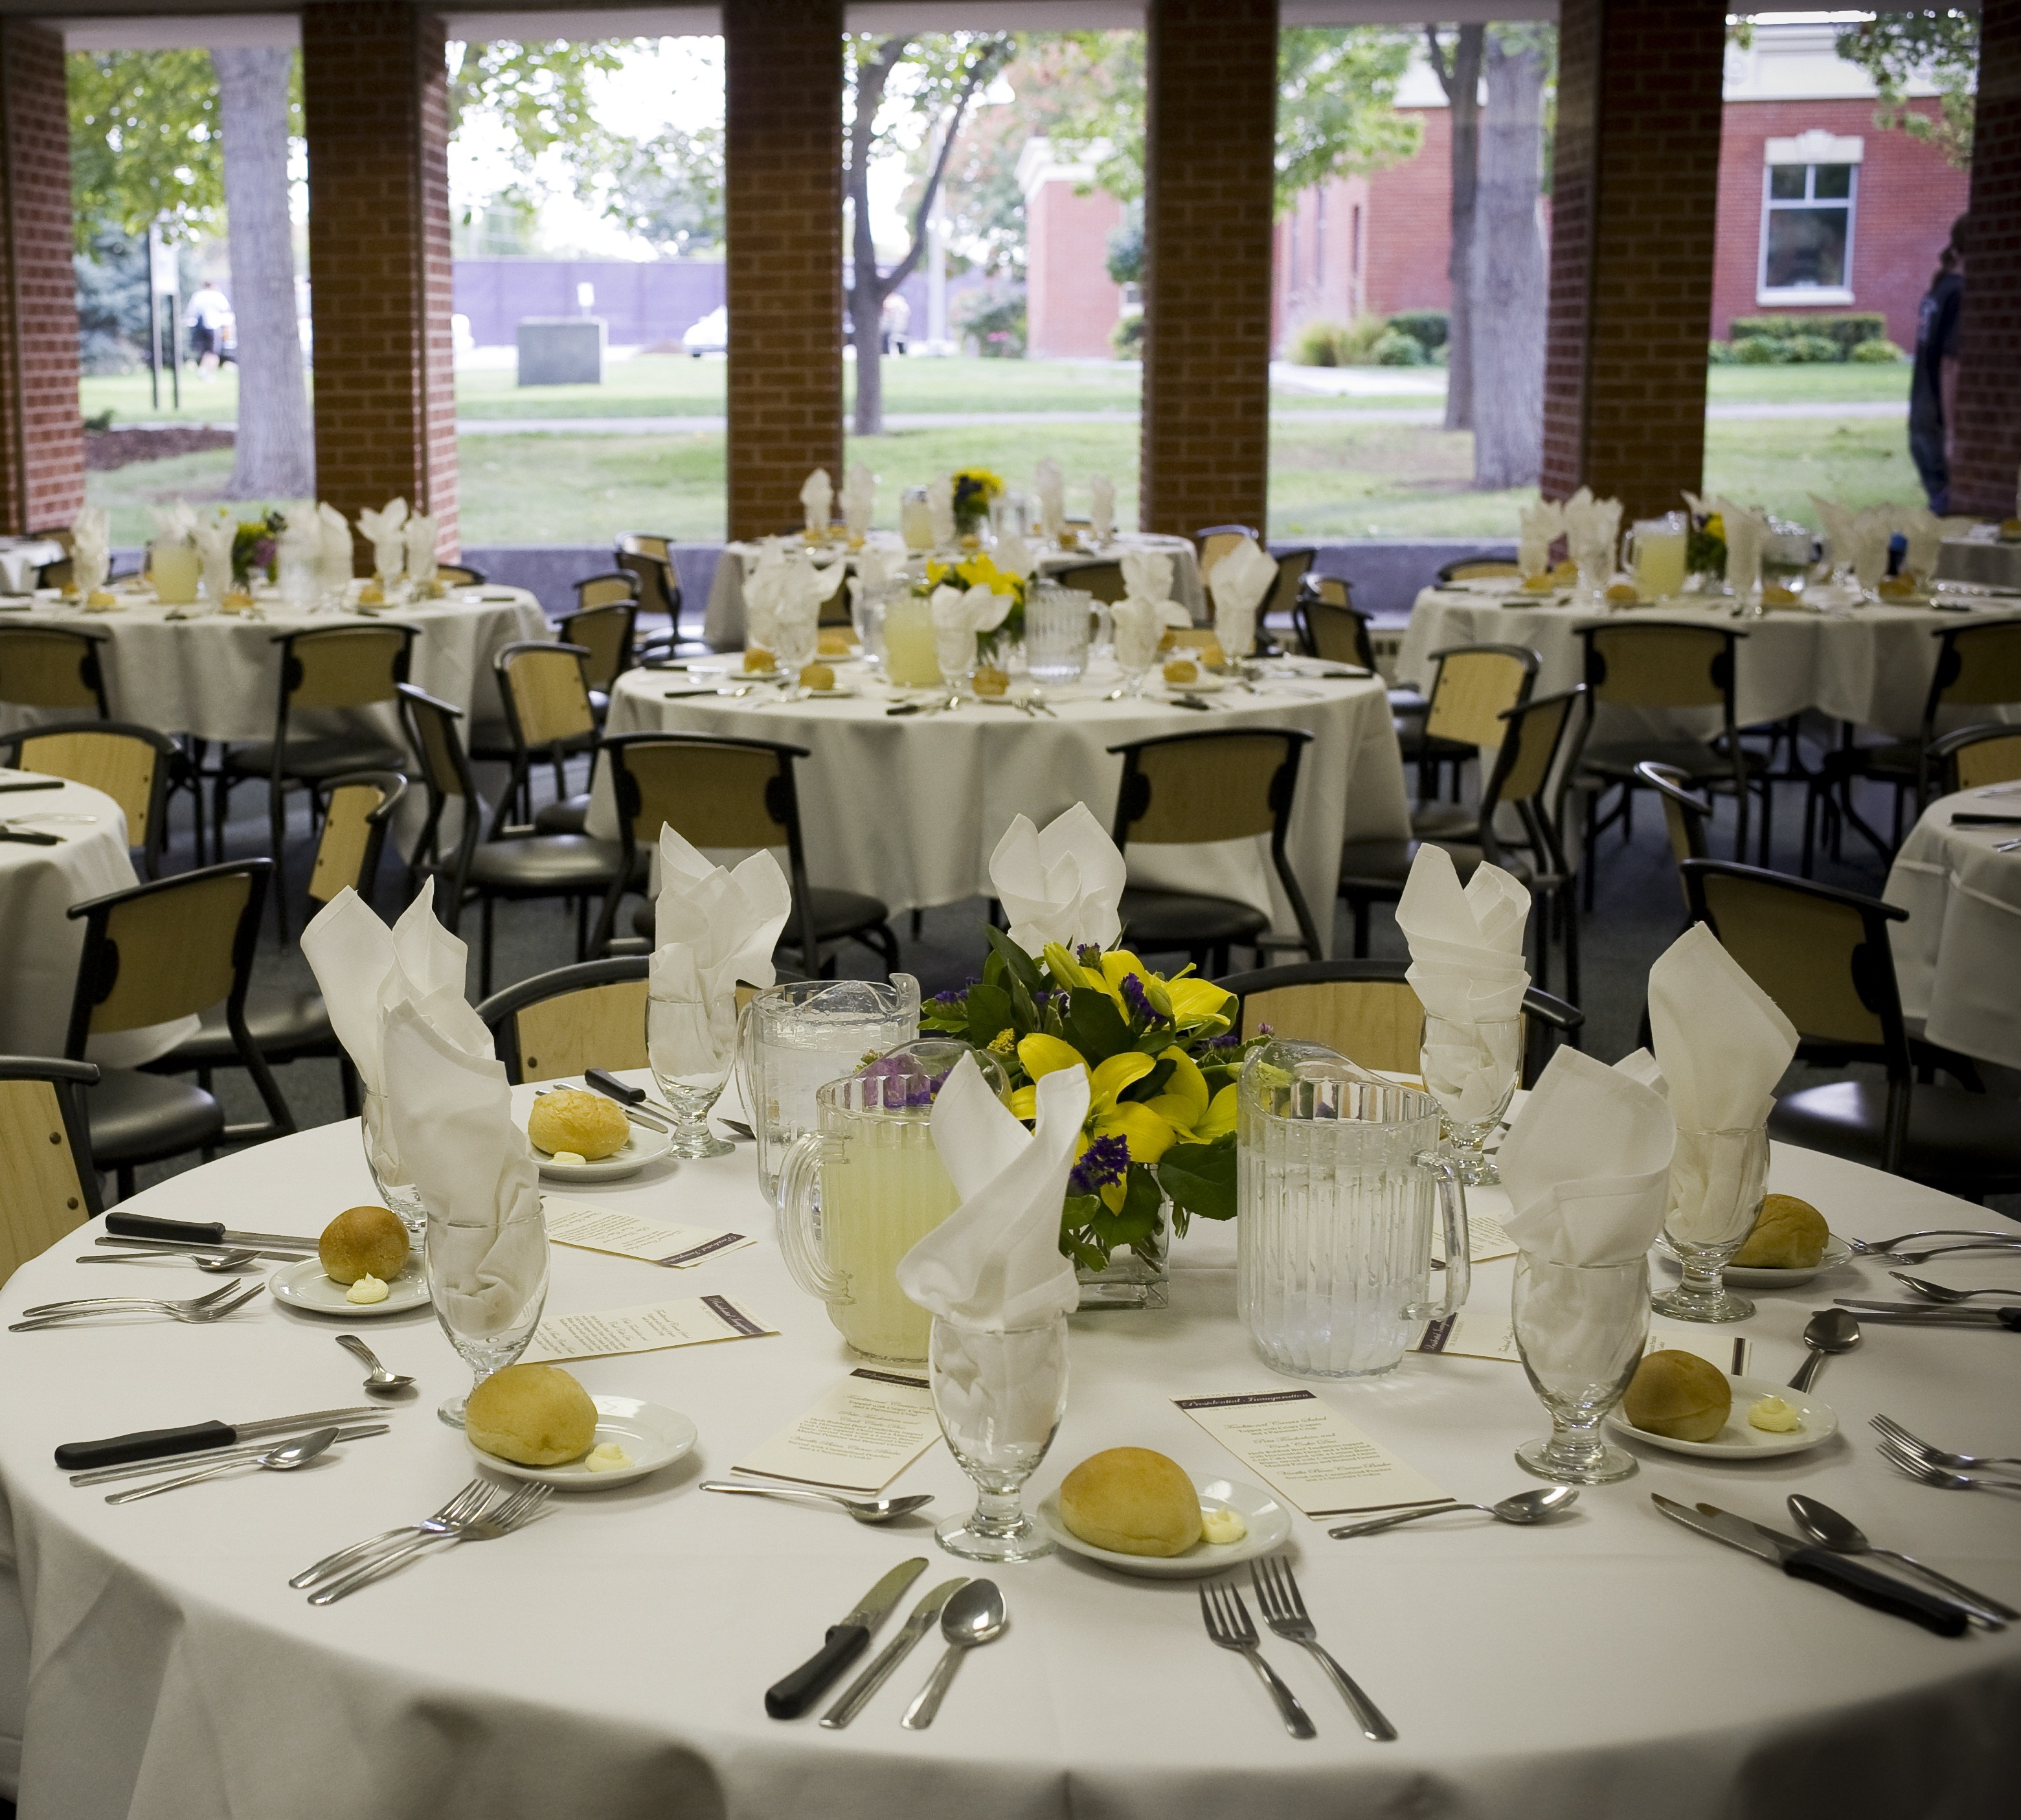 Simplot Dining Hall Party Room Venue For Rent In Caldwell